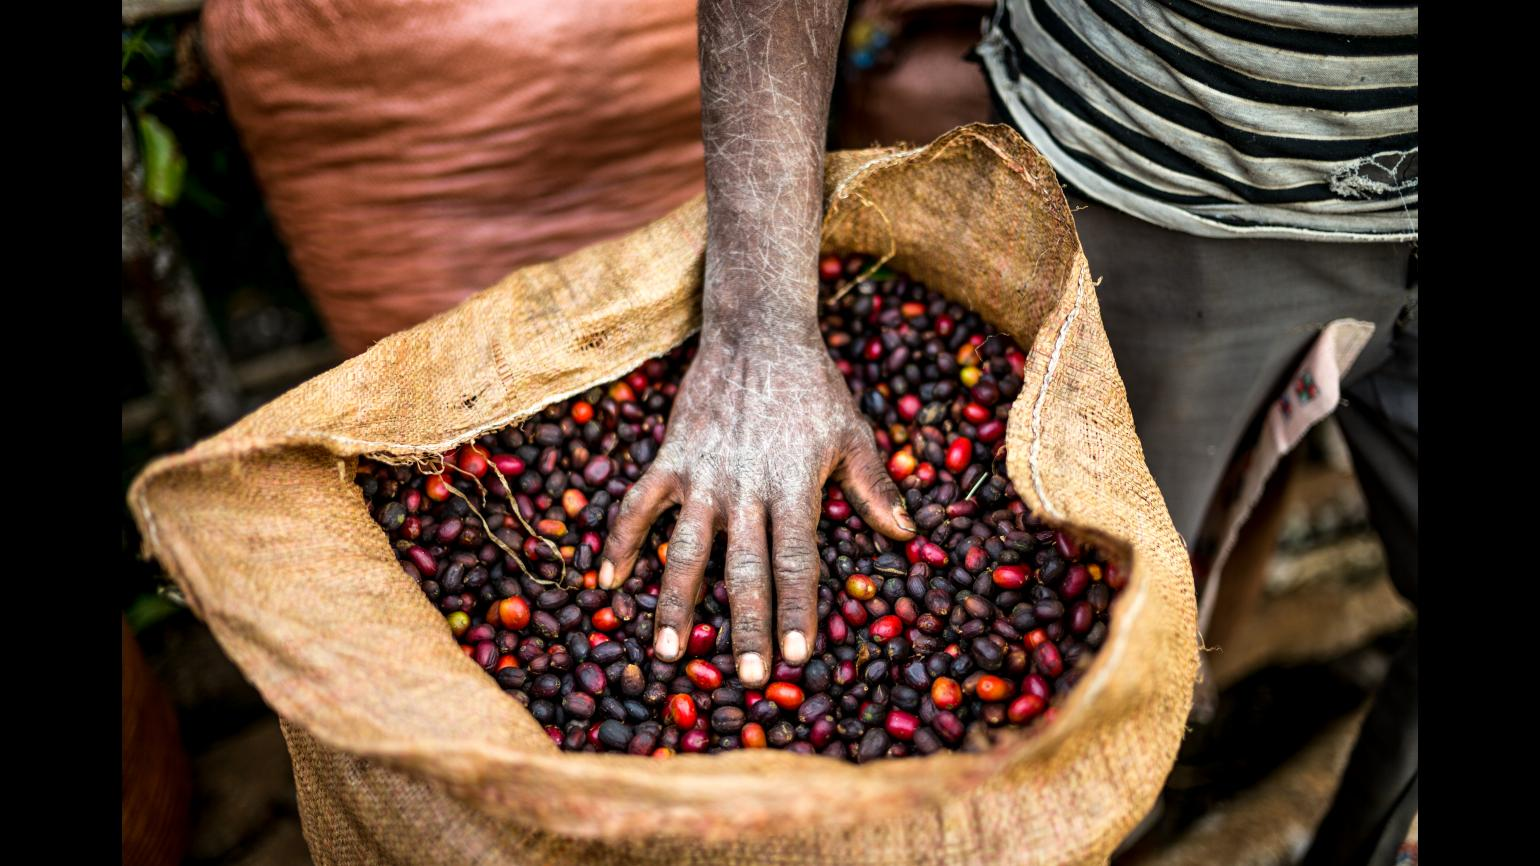 A man inspects fresh harvested coffee in Ethiopia